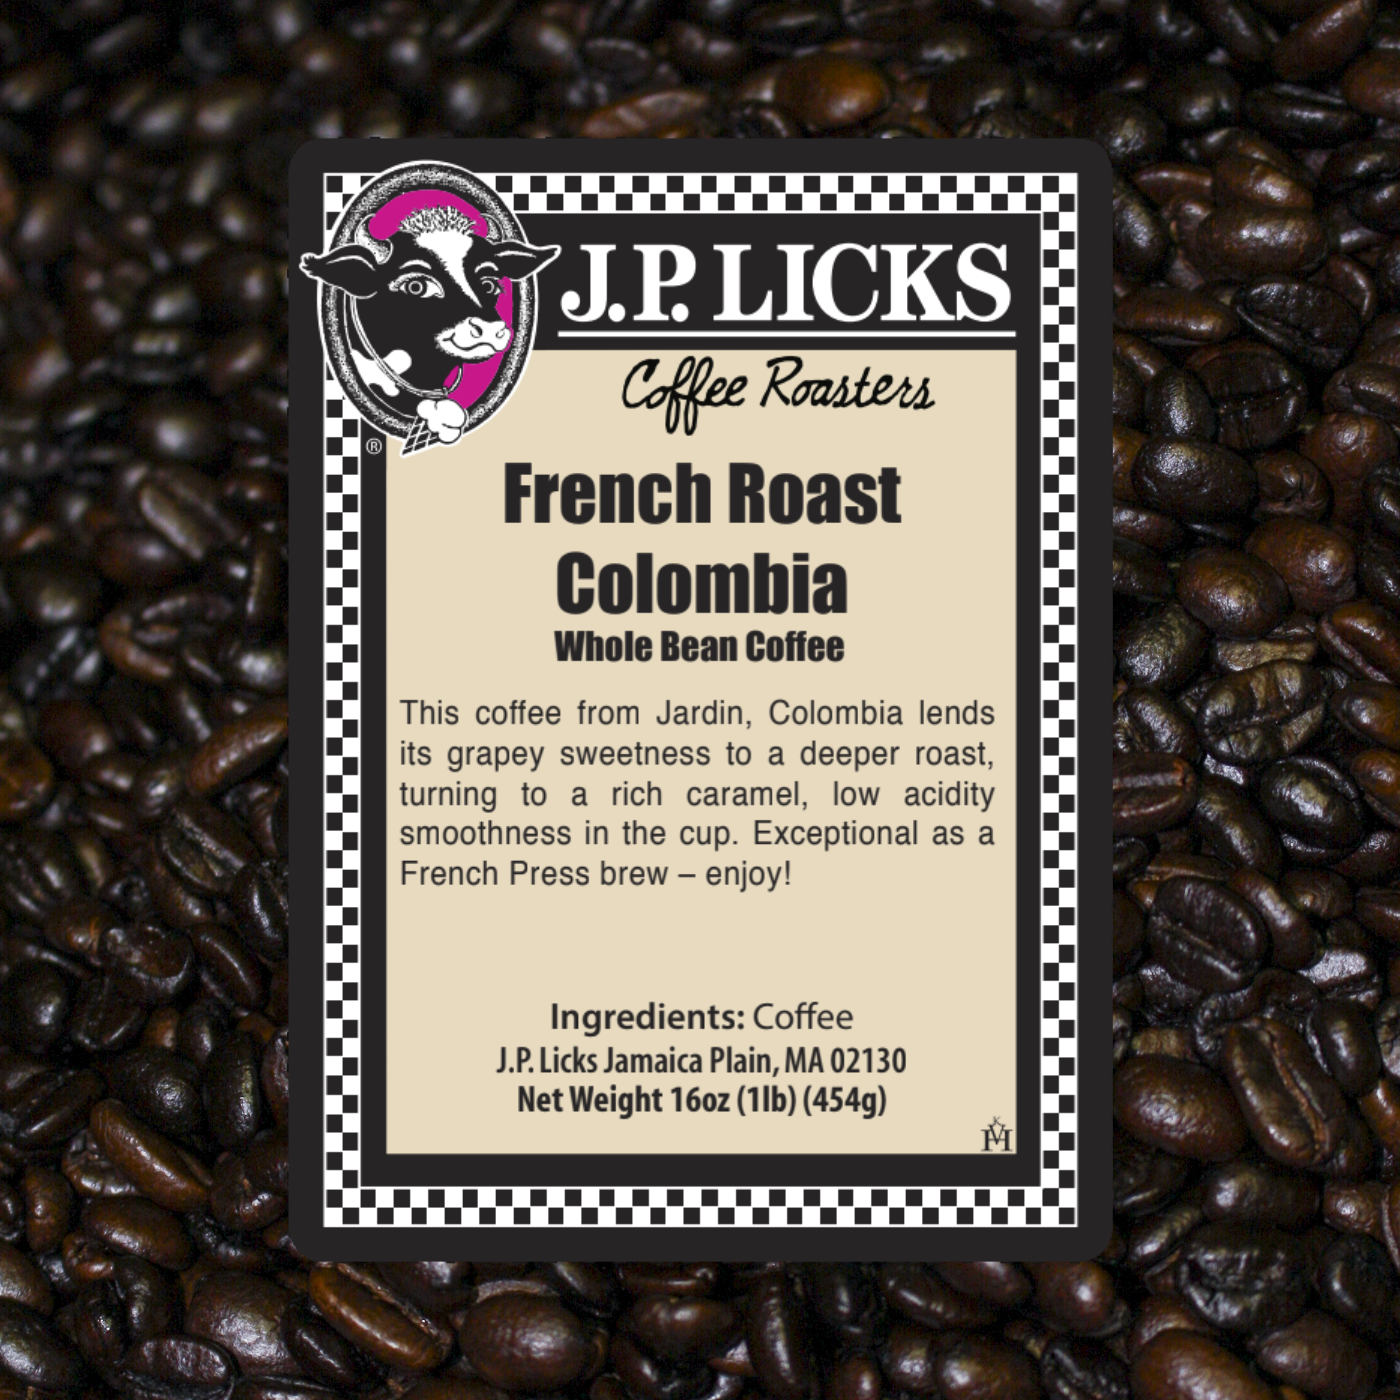 French Roast Columbian Coffee label from JP Licks